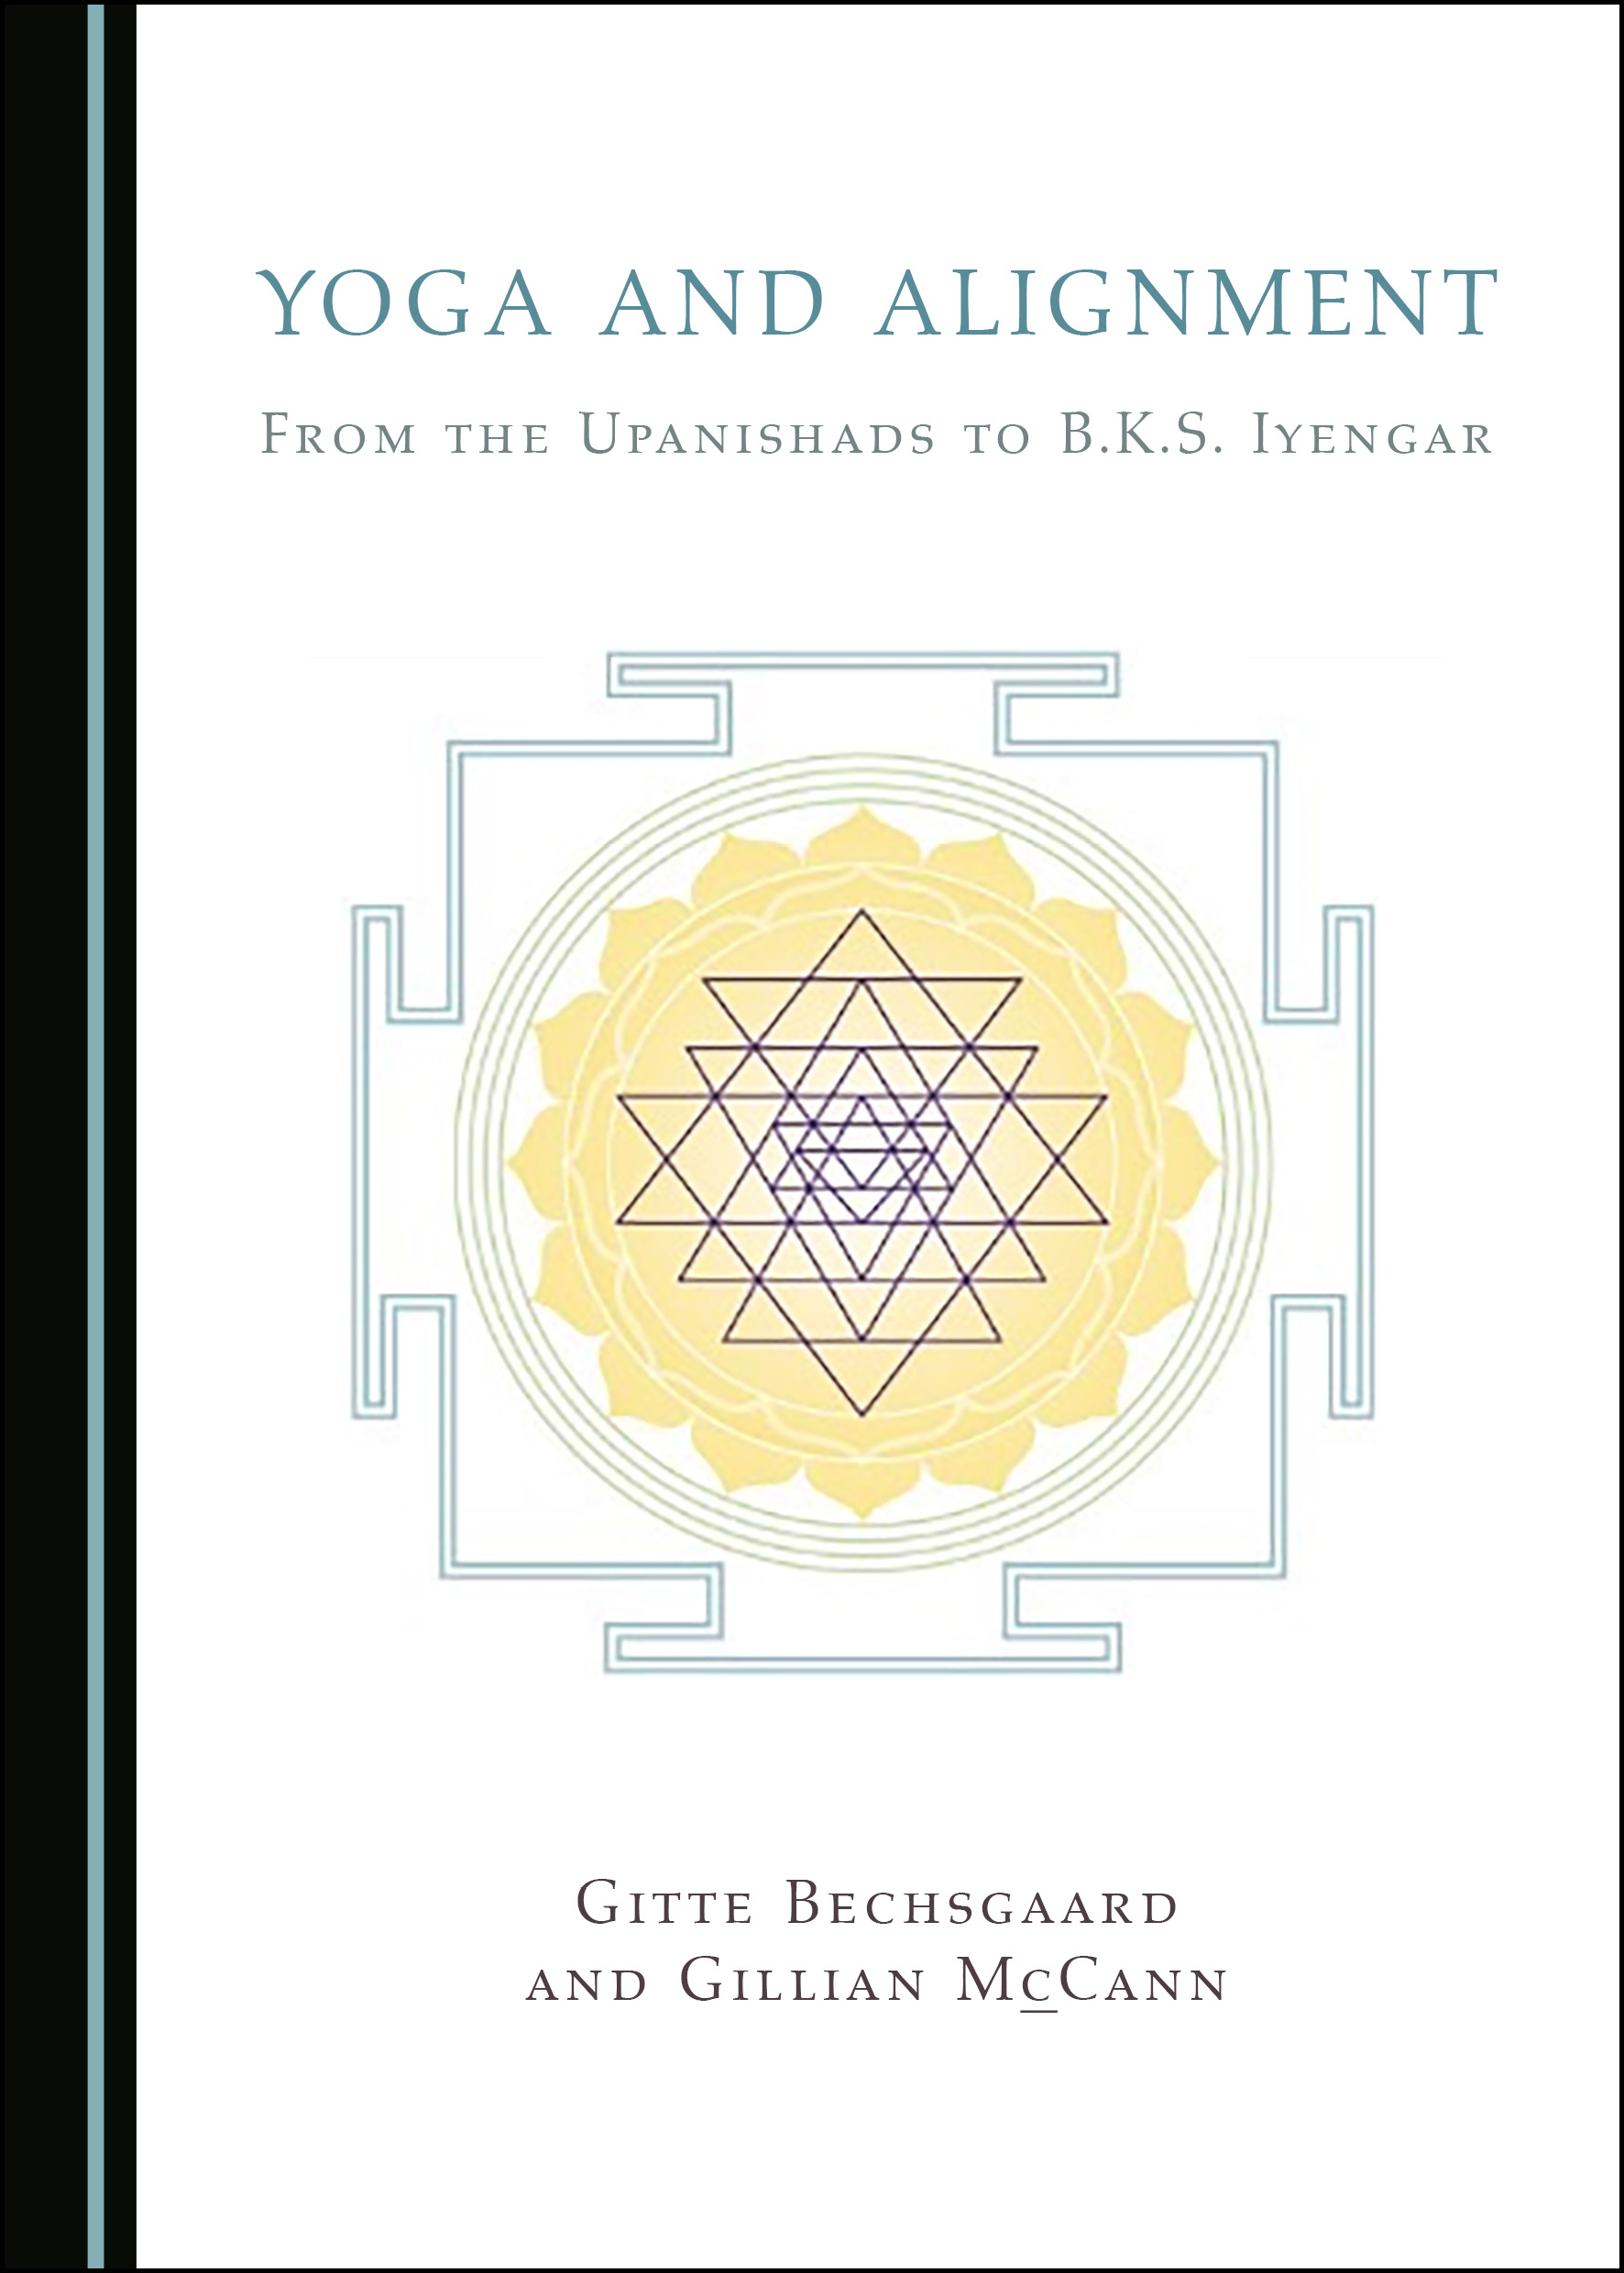 Yoga and Alignment: From the Upanishads to B.K.S. Iyengar